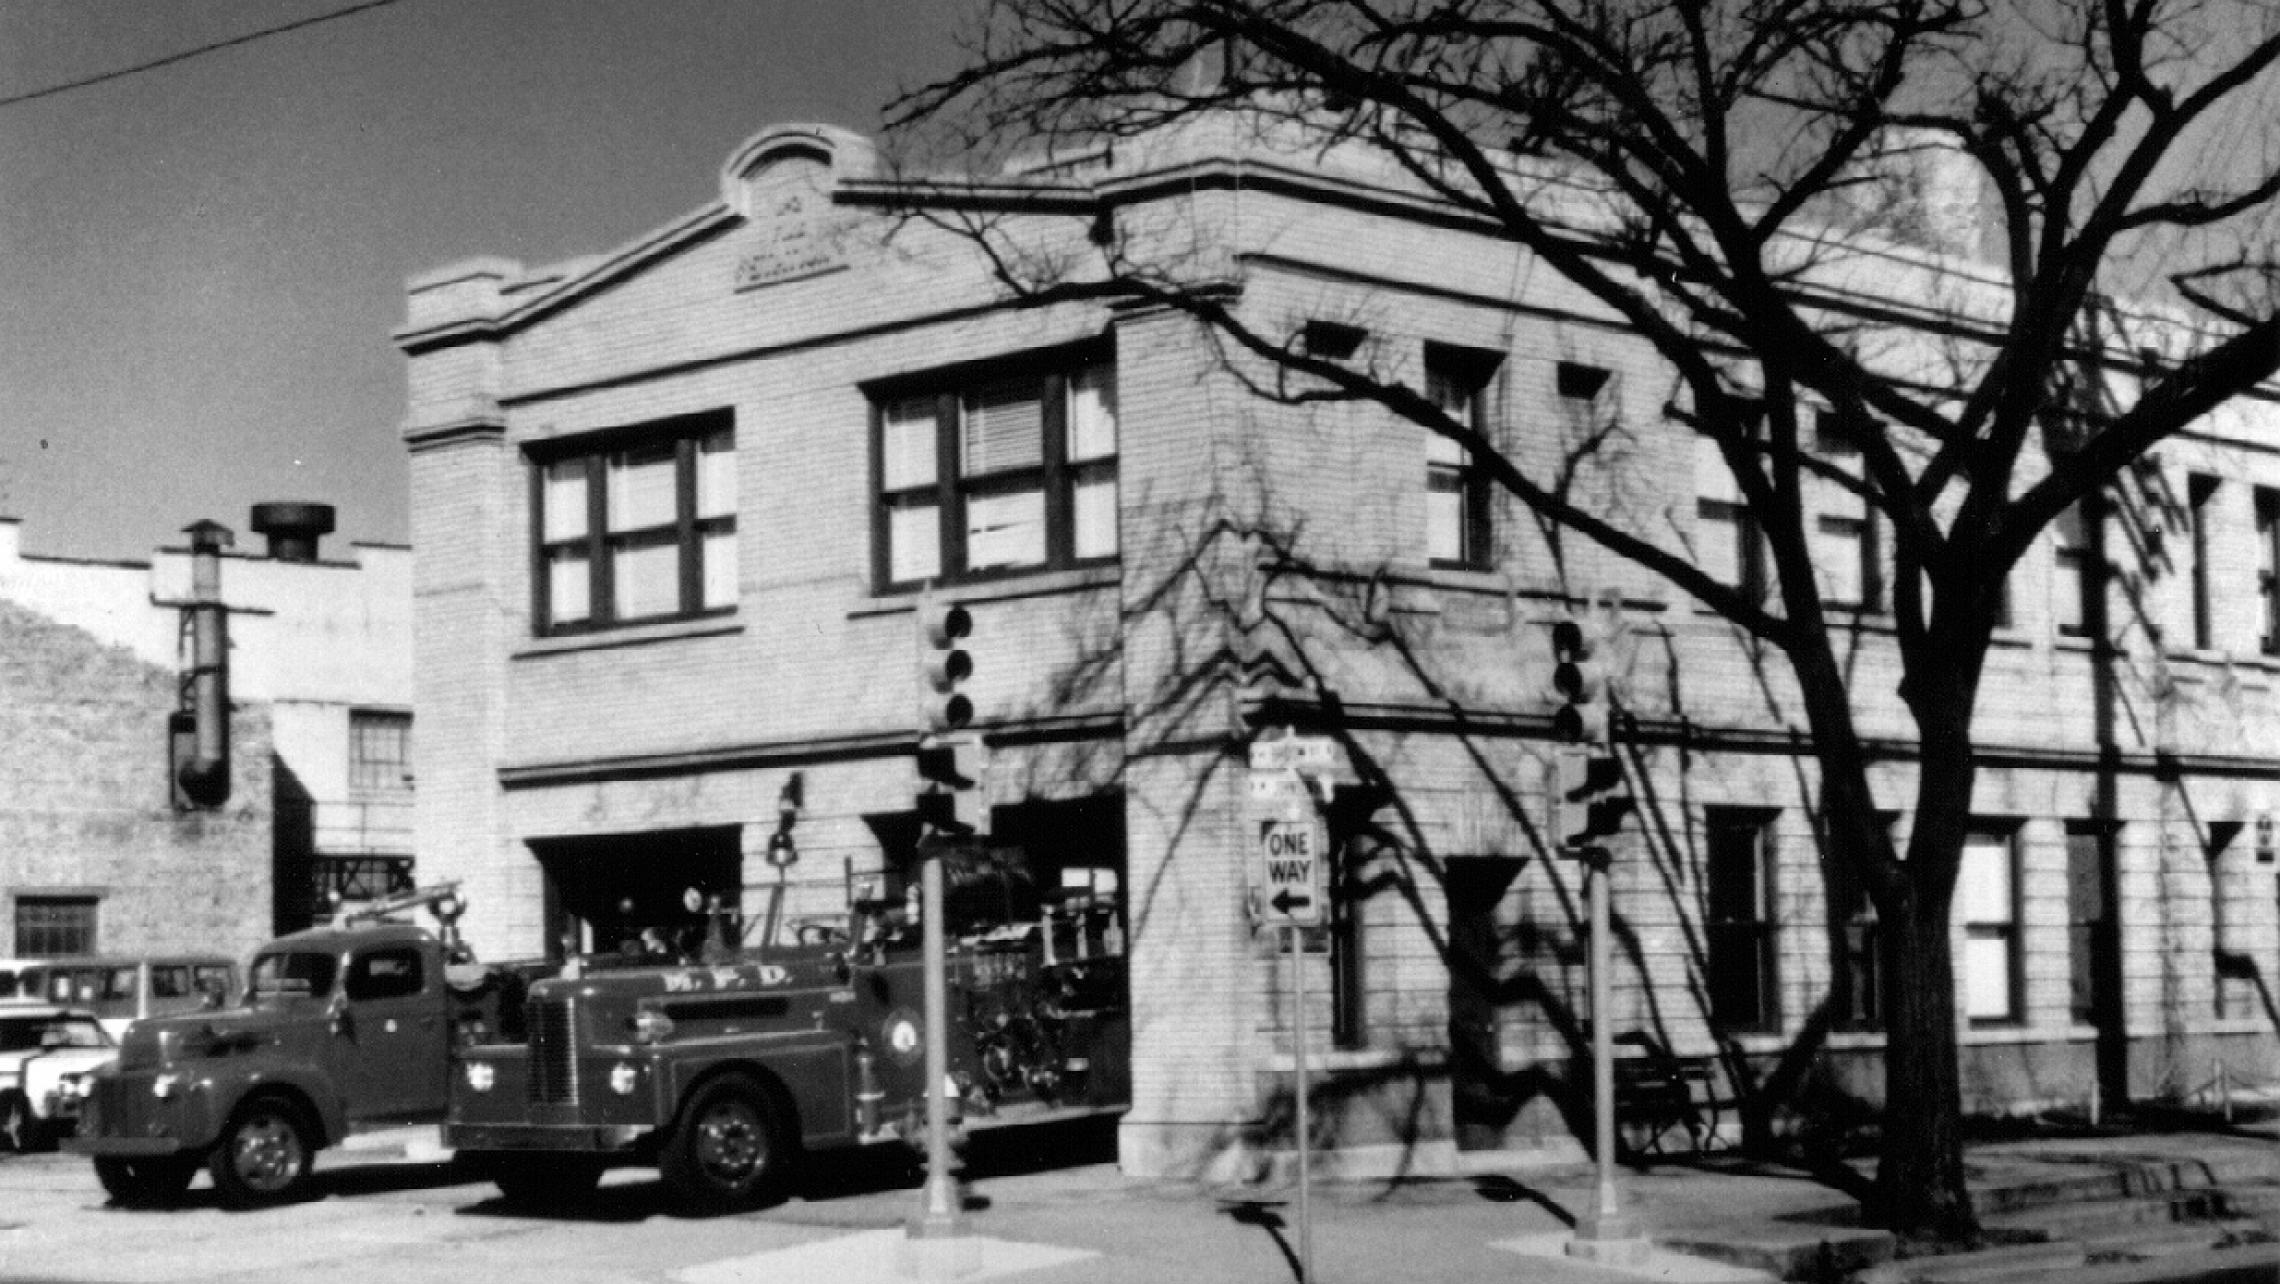 ULI Fire Station Number 2 Historic